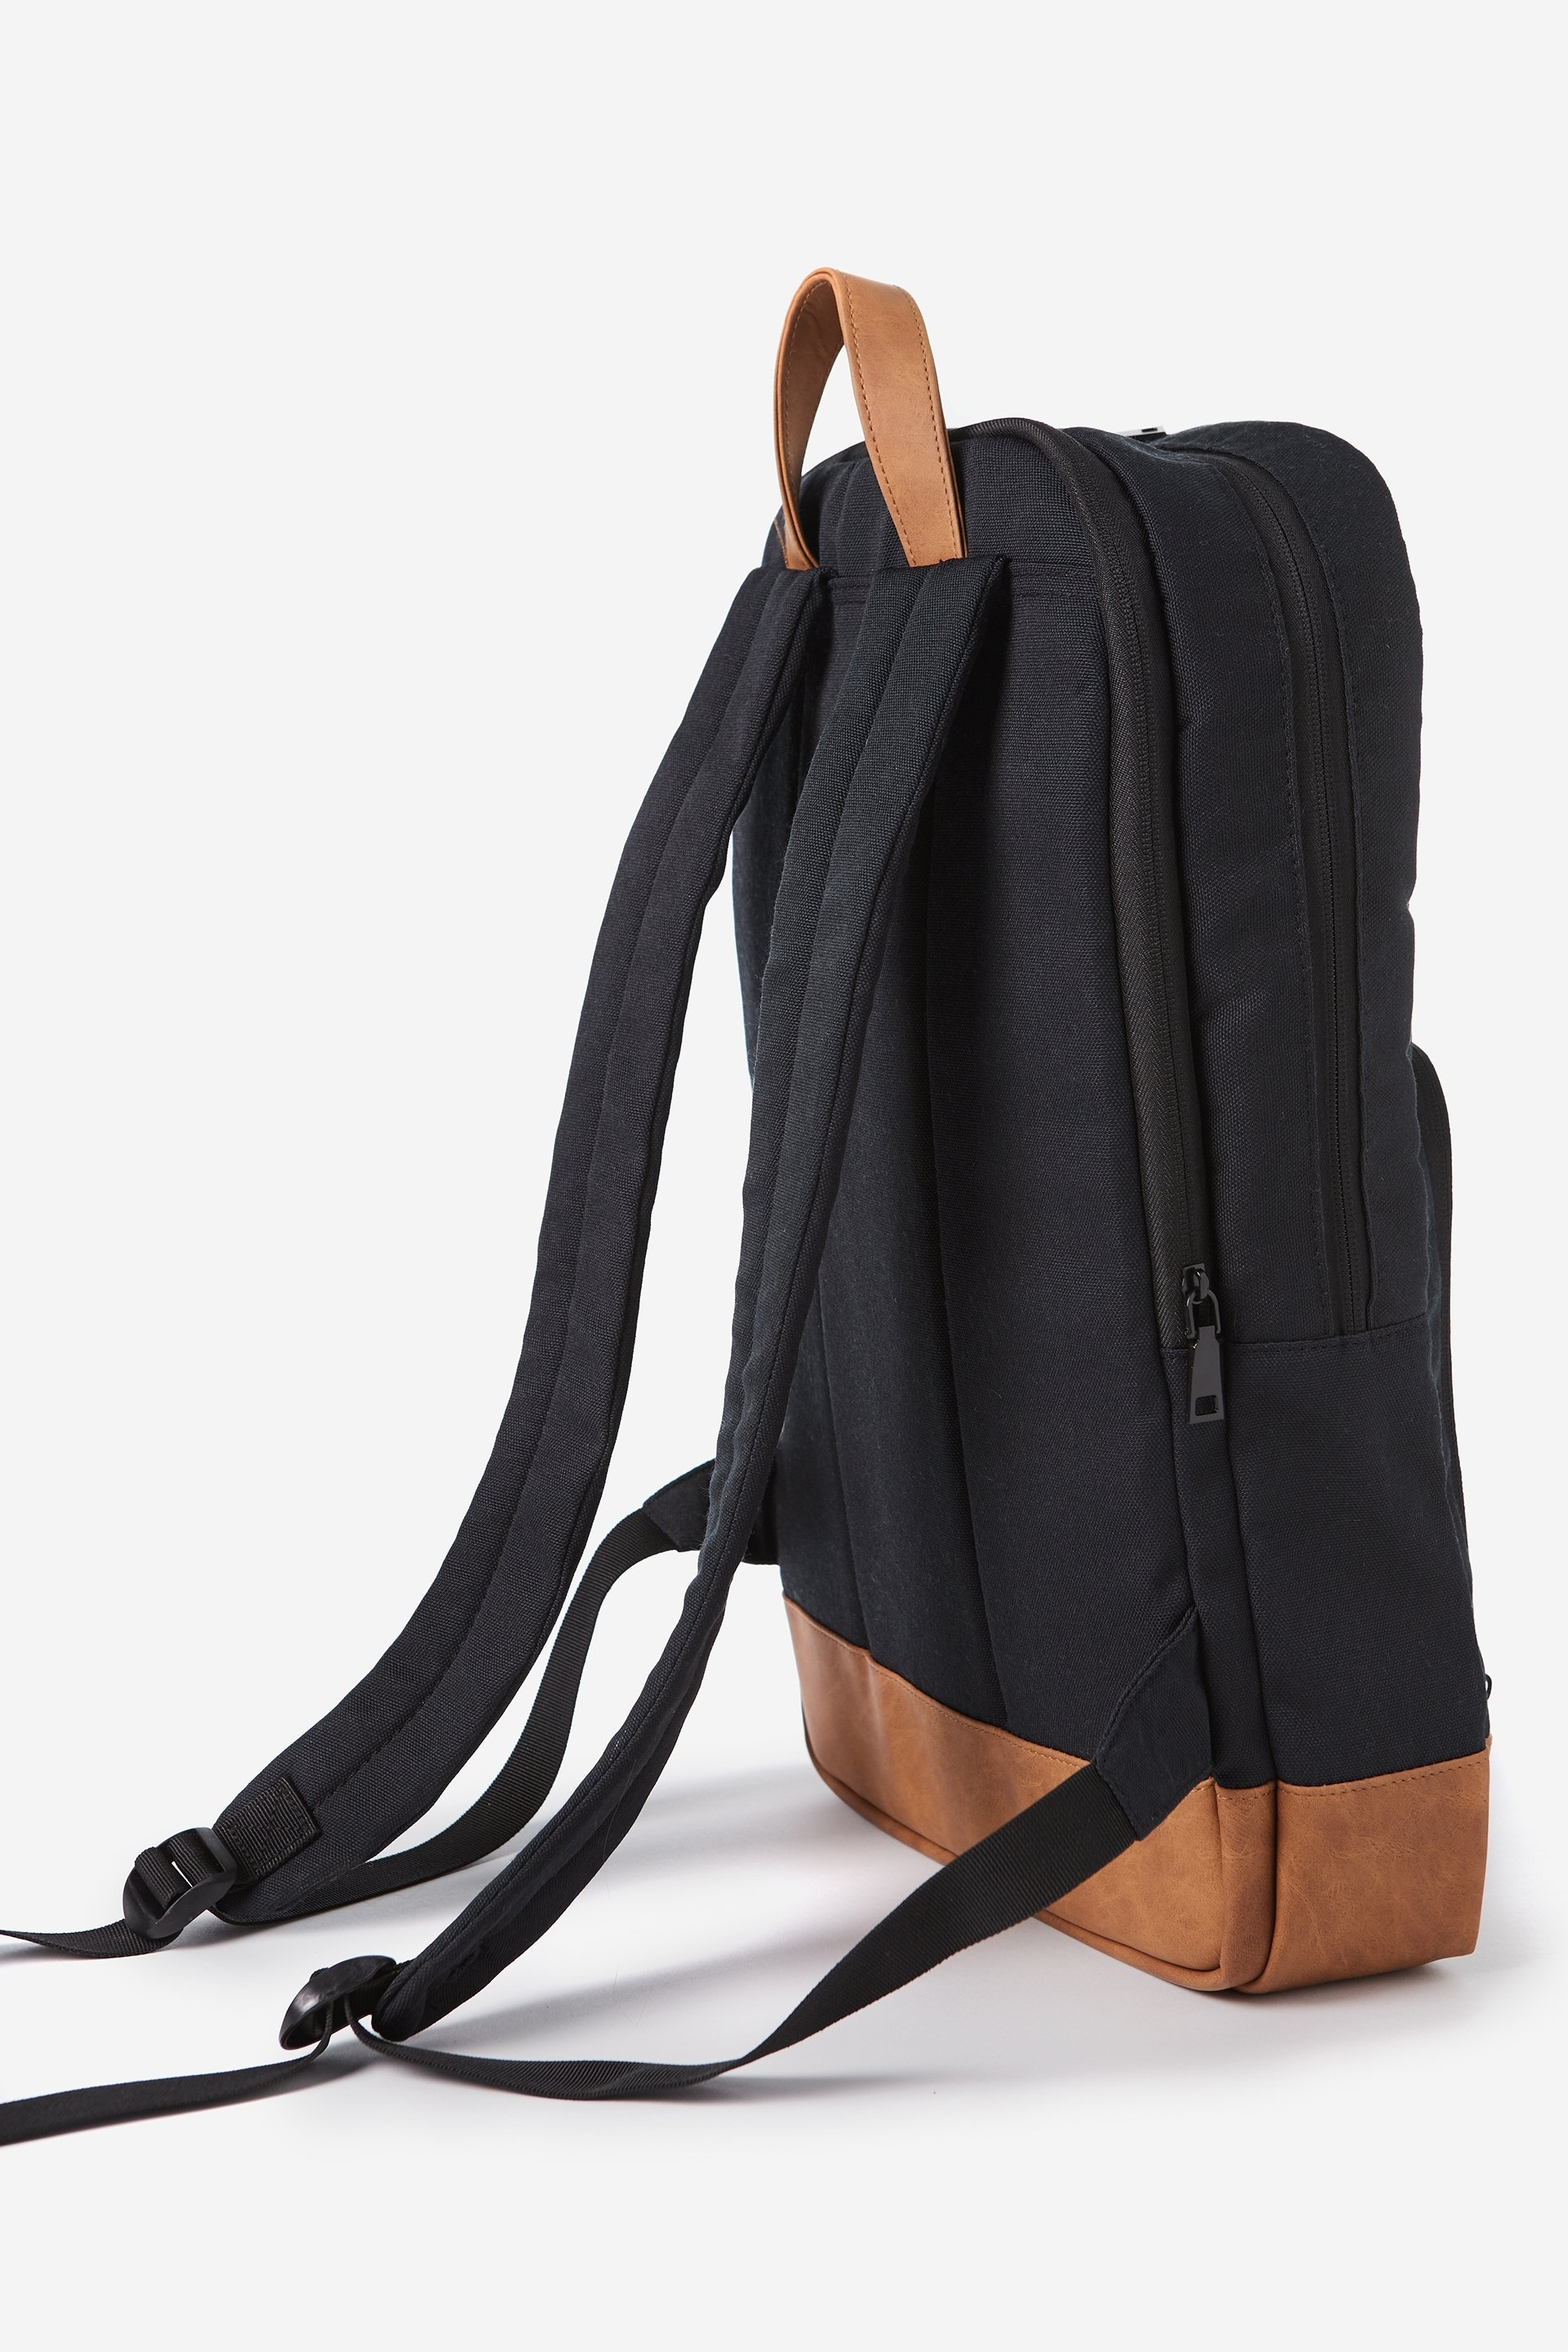 5534e9c1ec ... Voyager Laptop Backpack